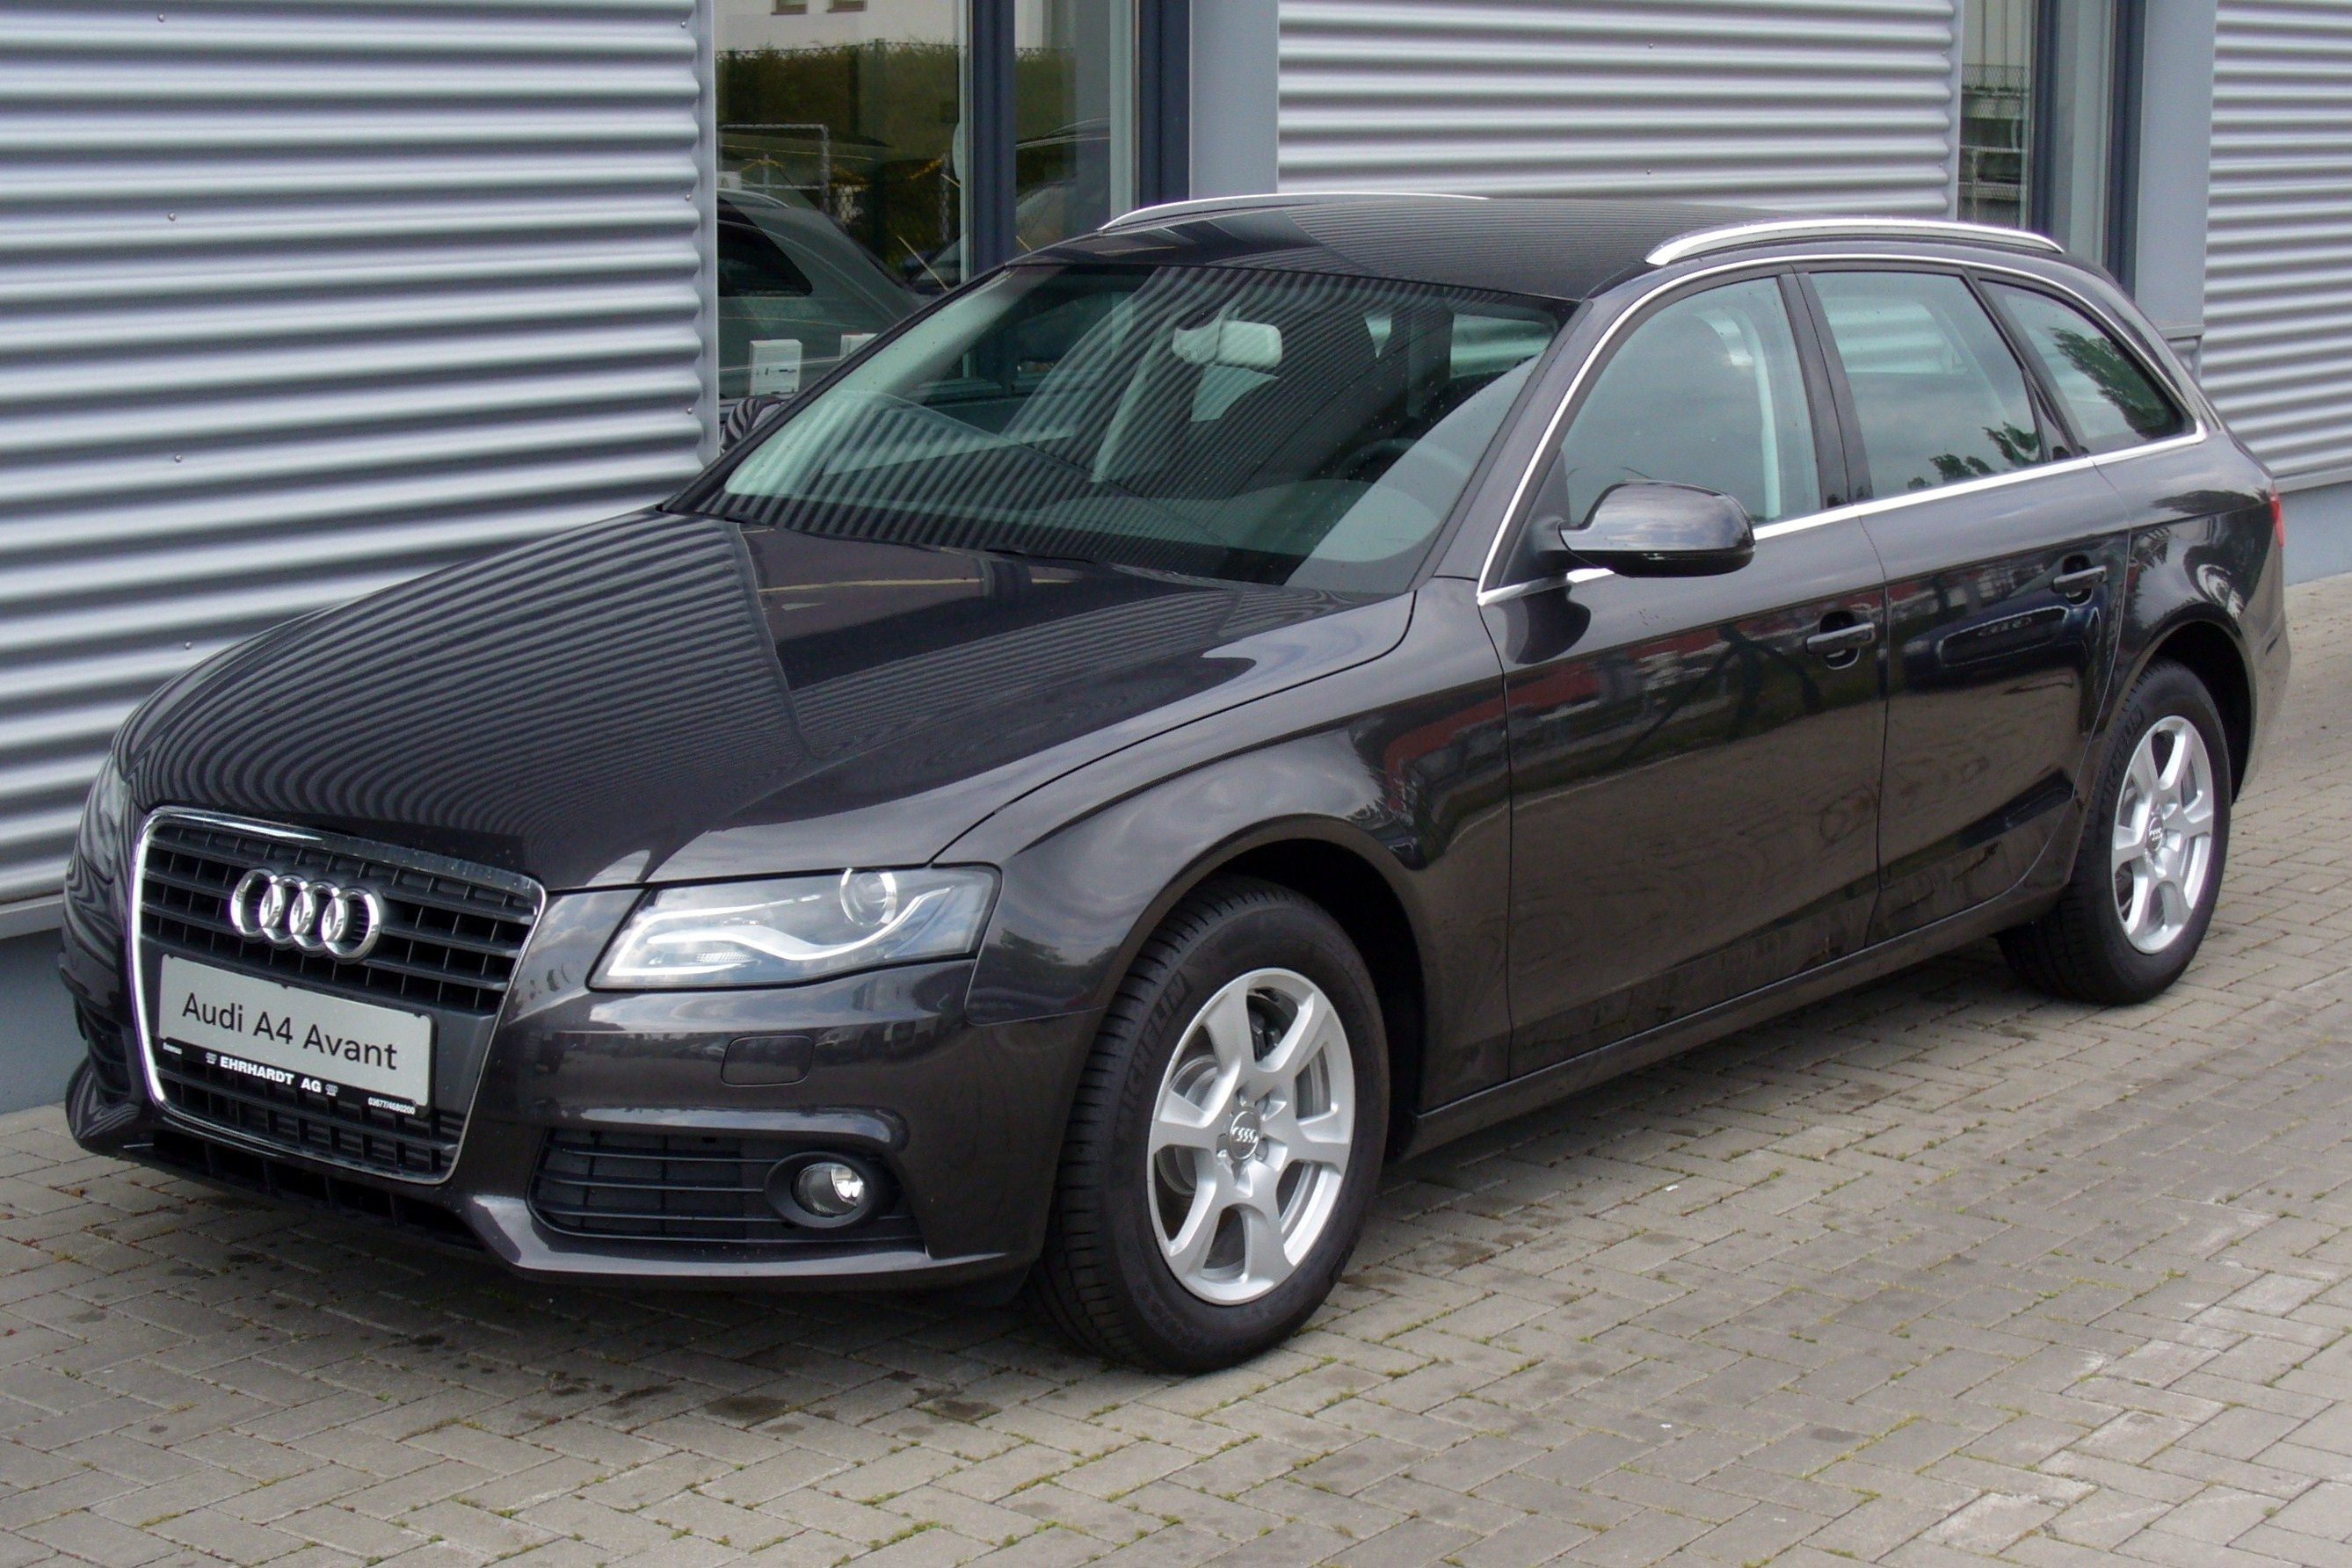 file audi a4 avant attraction 2 0 tdi lavagrau jpg wikimedia commons. Black Bedroom Furniture Sets. Home Design Ideas